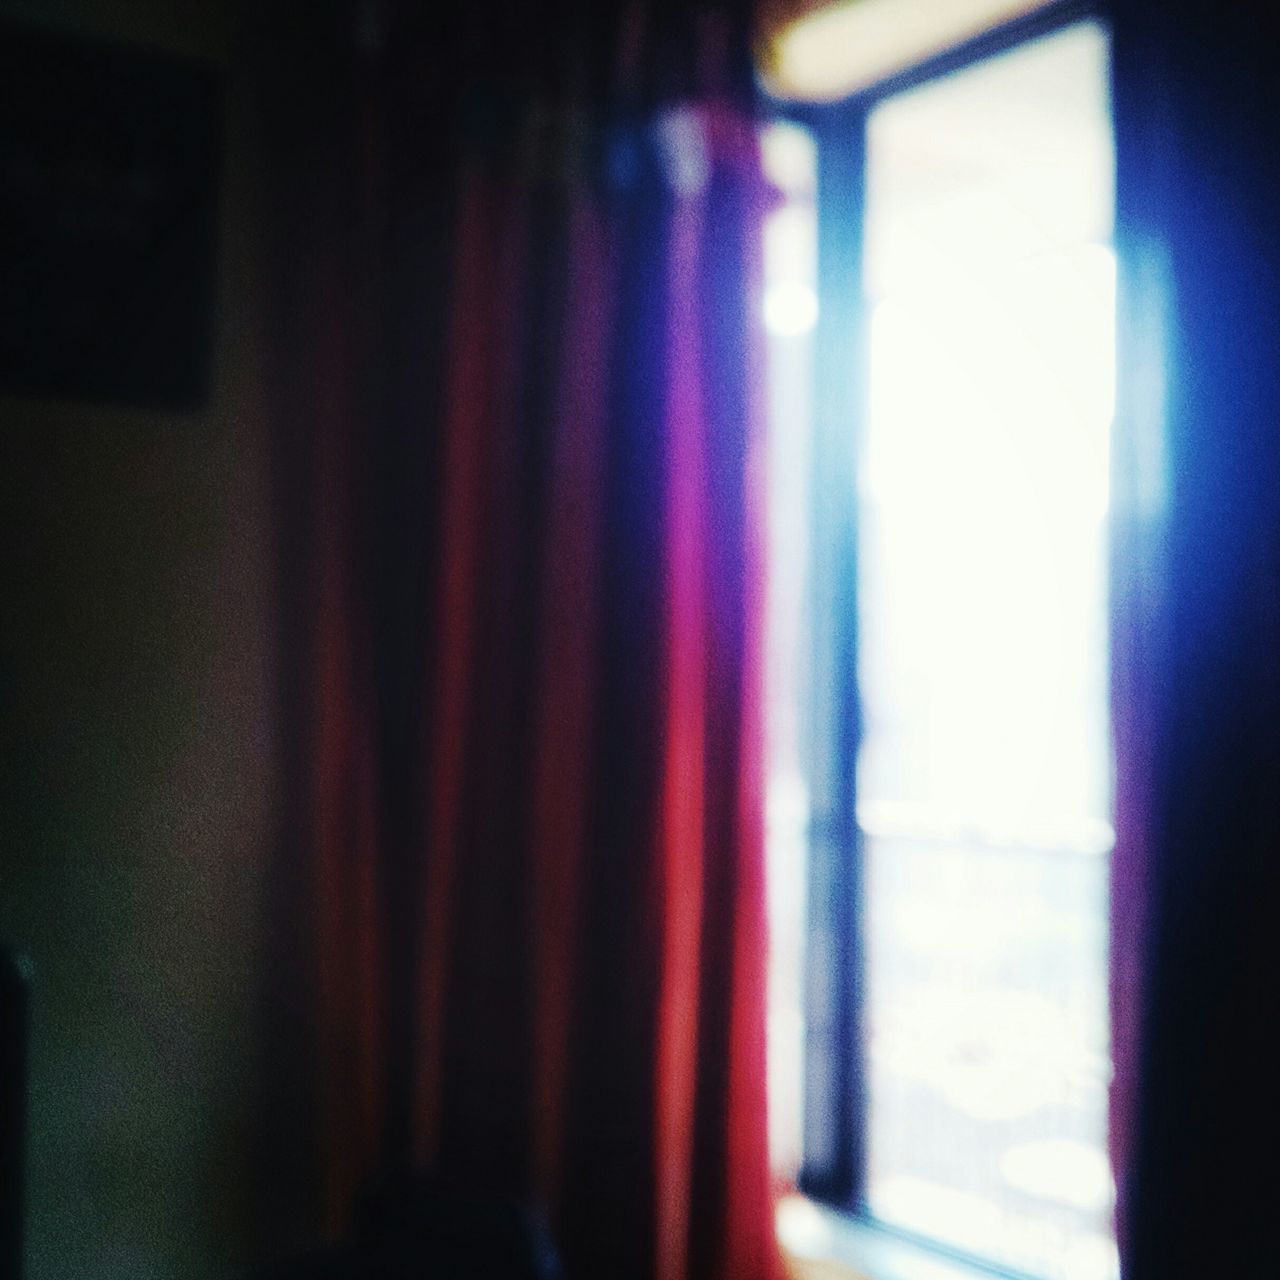 indoors, window, multi colored, no people, curtain, day, drapes, choice, close-up